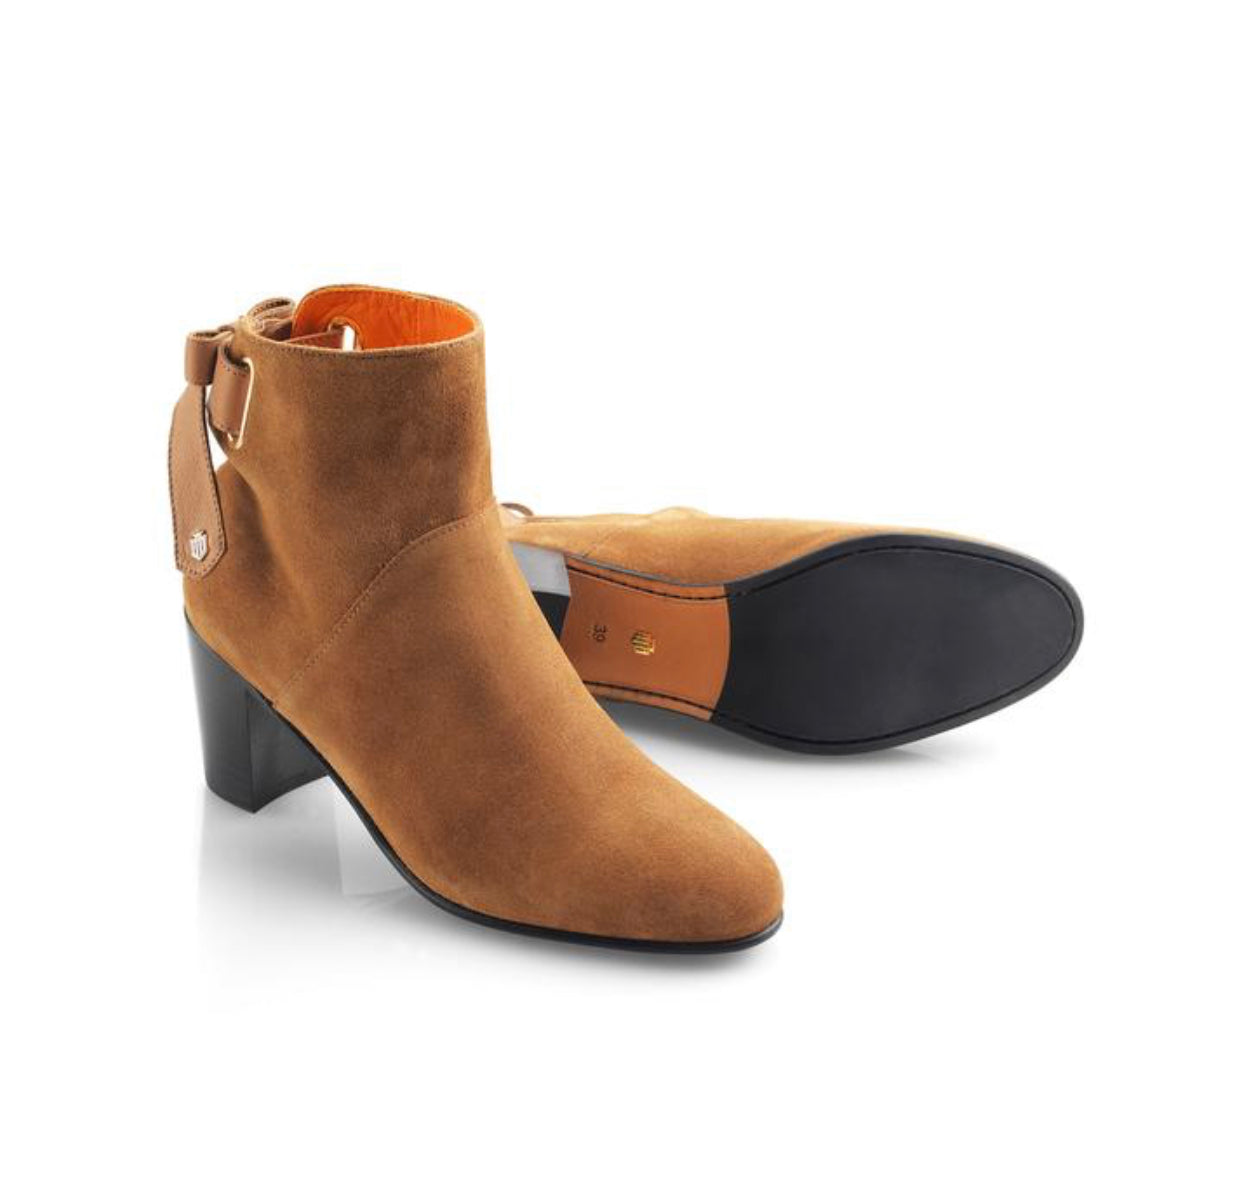 THE FAIRFAX & FAVOR BLAIR SUEDE ANKLE BOOT - TAN